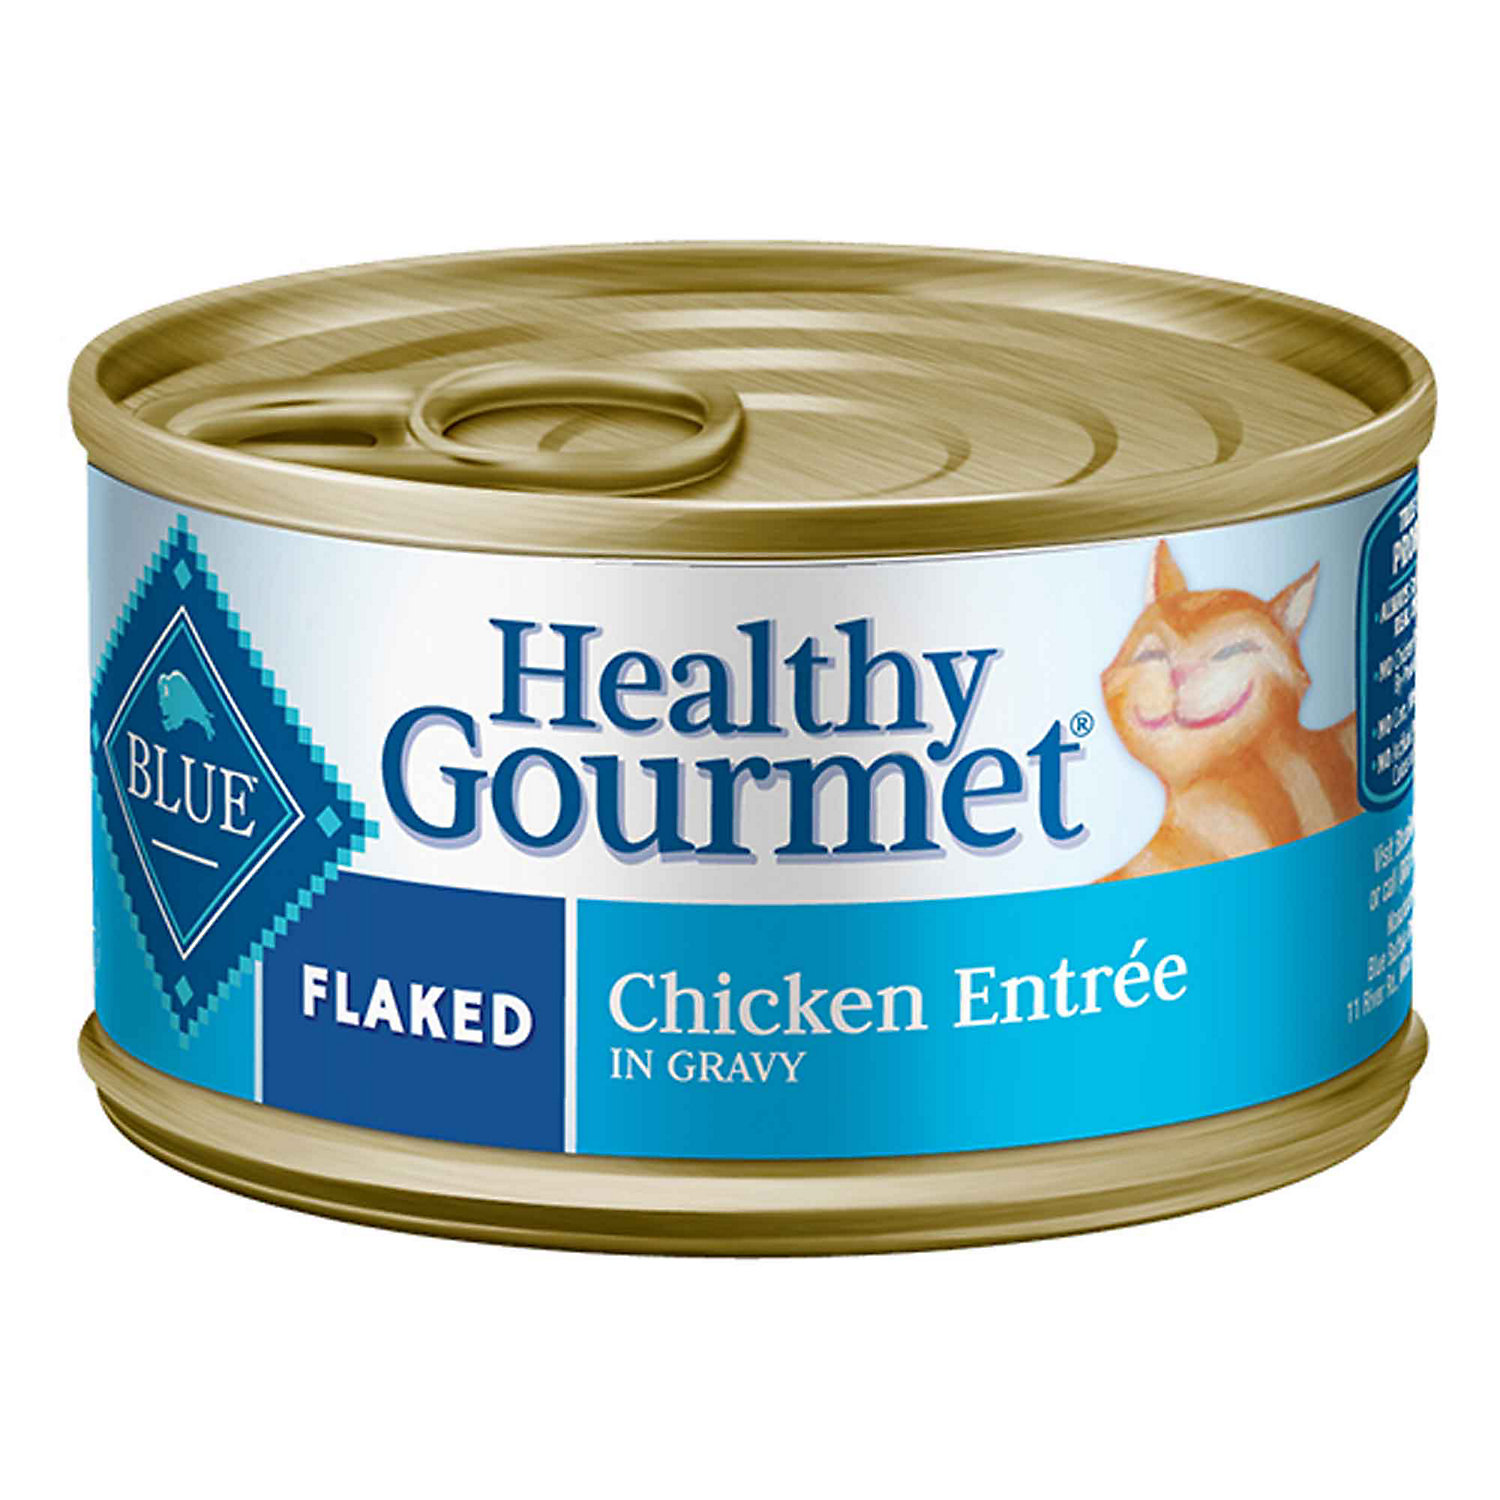 Blue Buffalo Healthy Gourmet Flaked Chicken Adult Canned Cat Food 3 Oz. Case Of 24